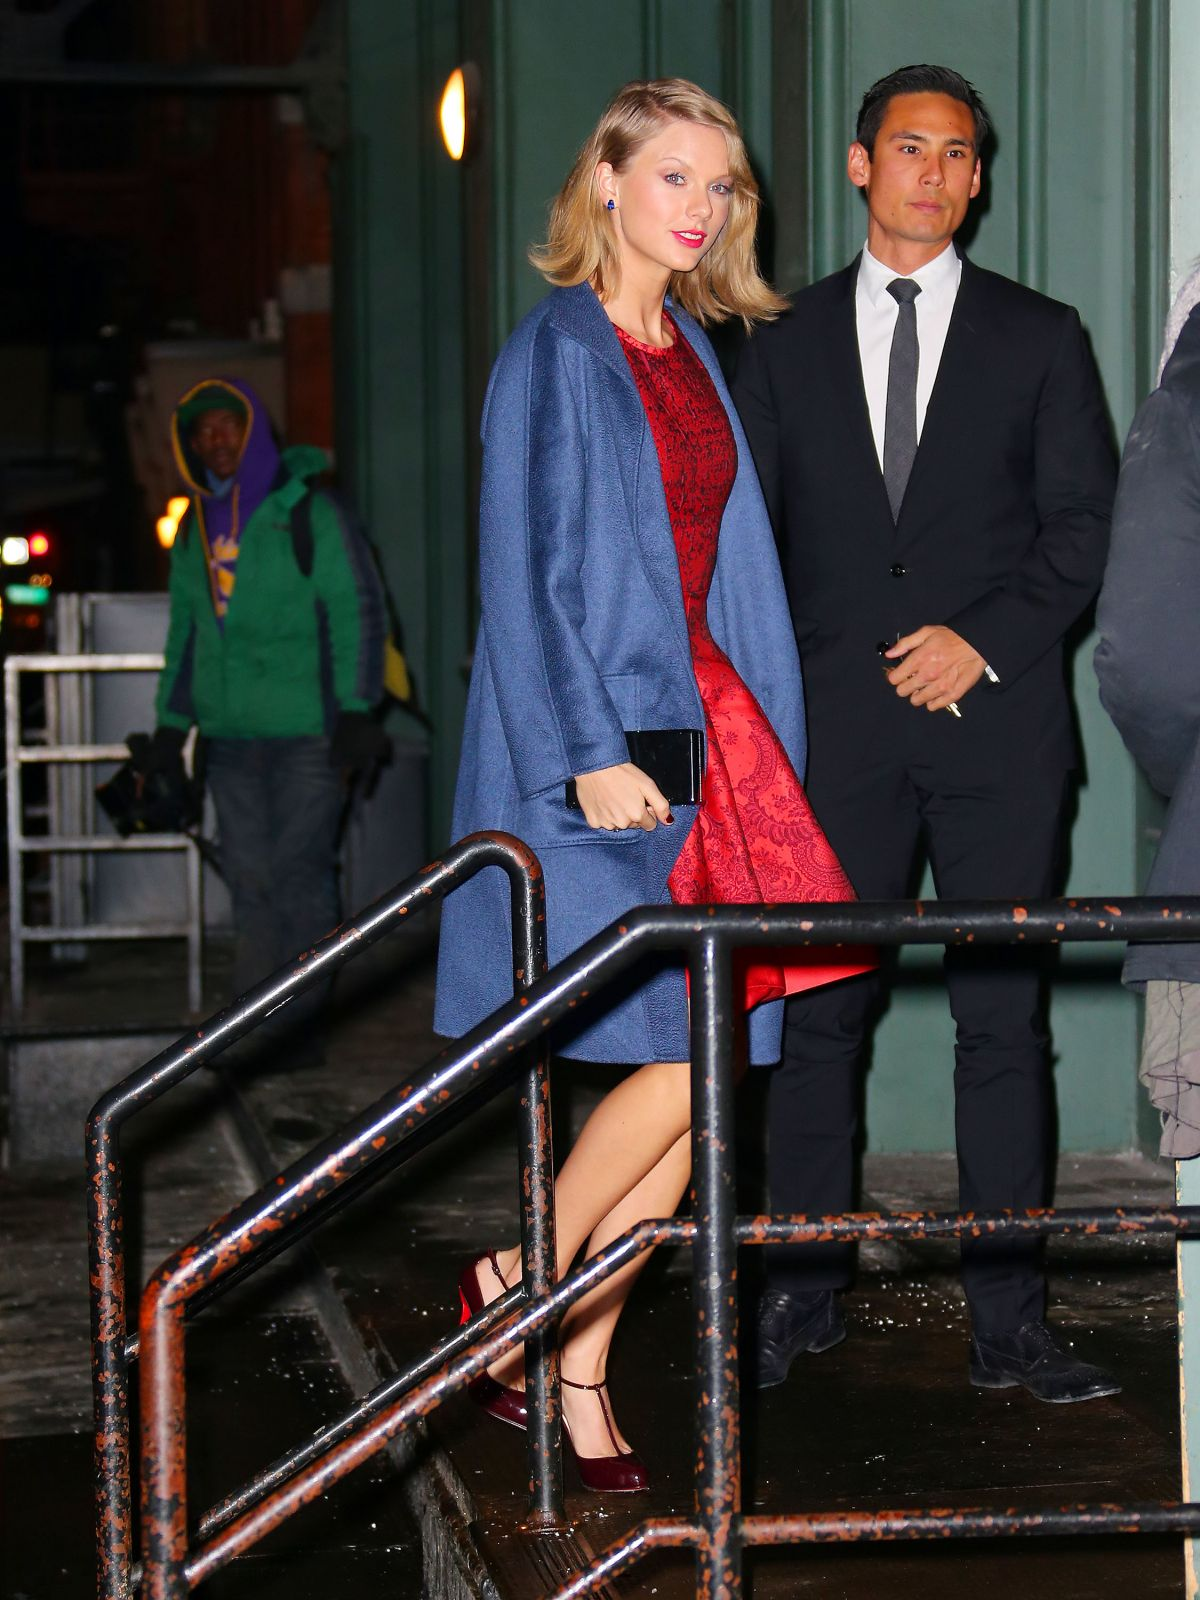 TAYLOR SWIFT and KARLIE KLOSS Night Out in New York